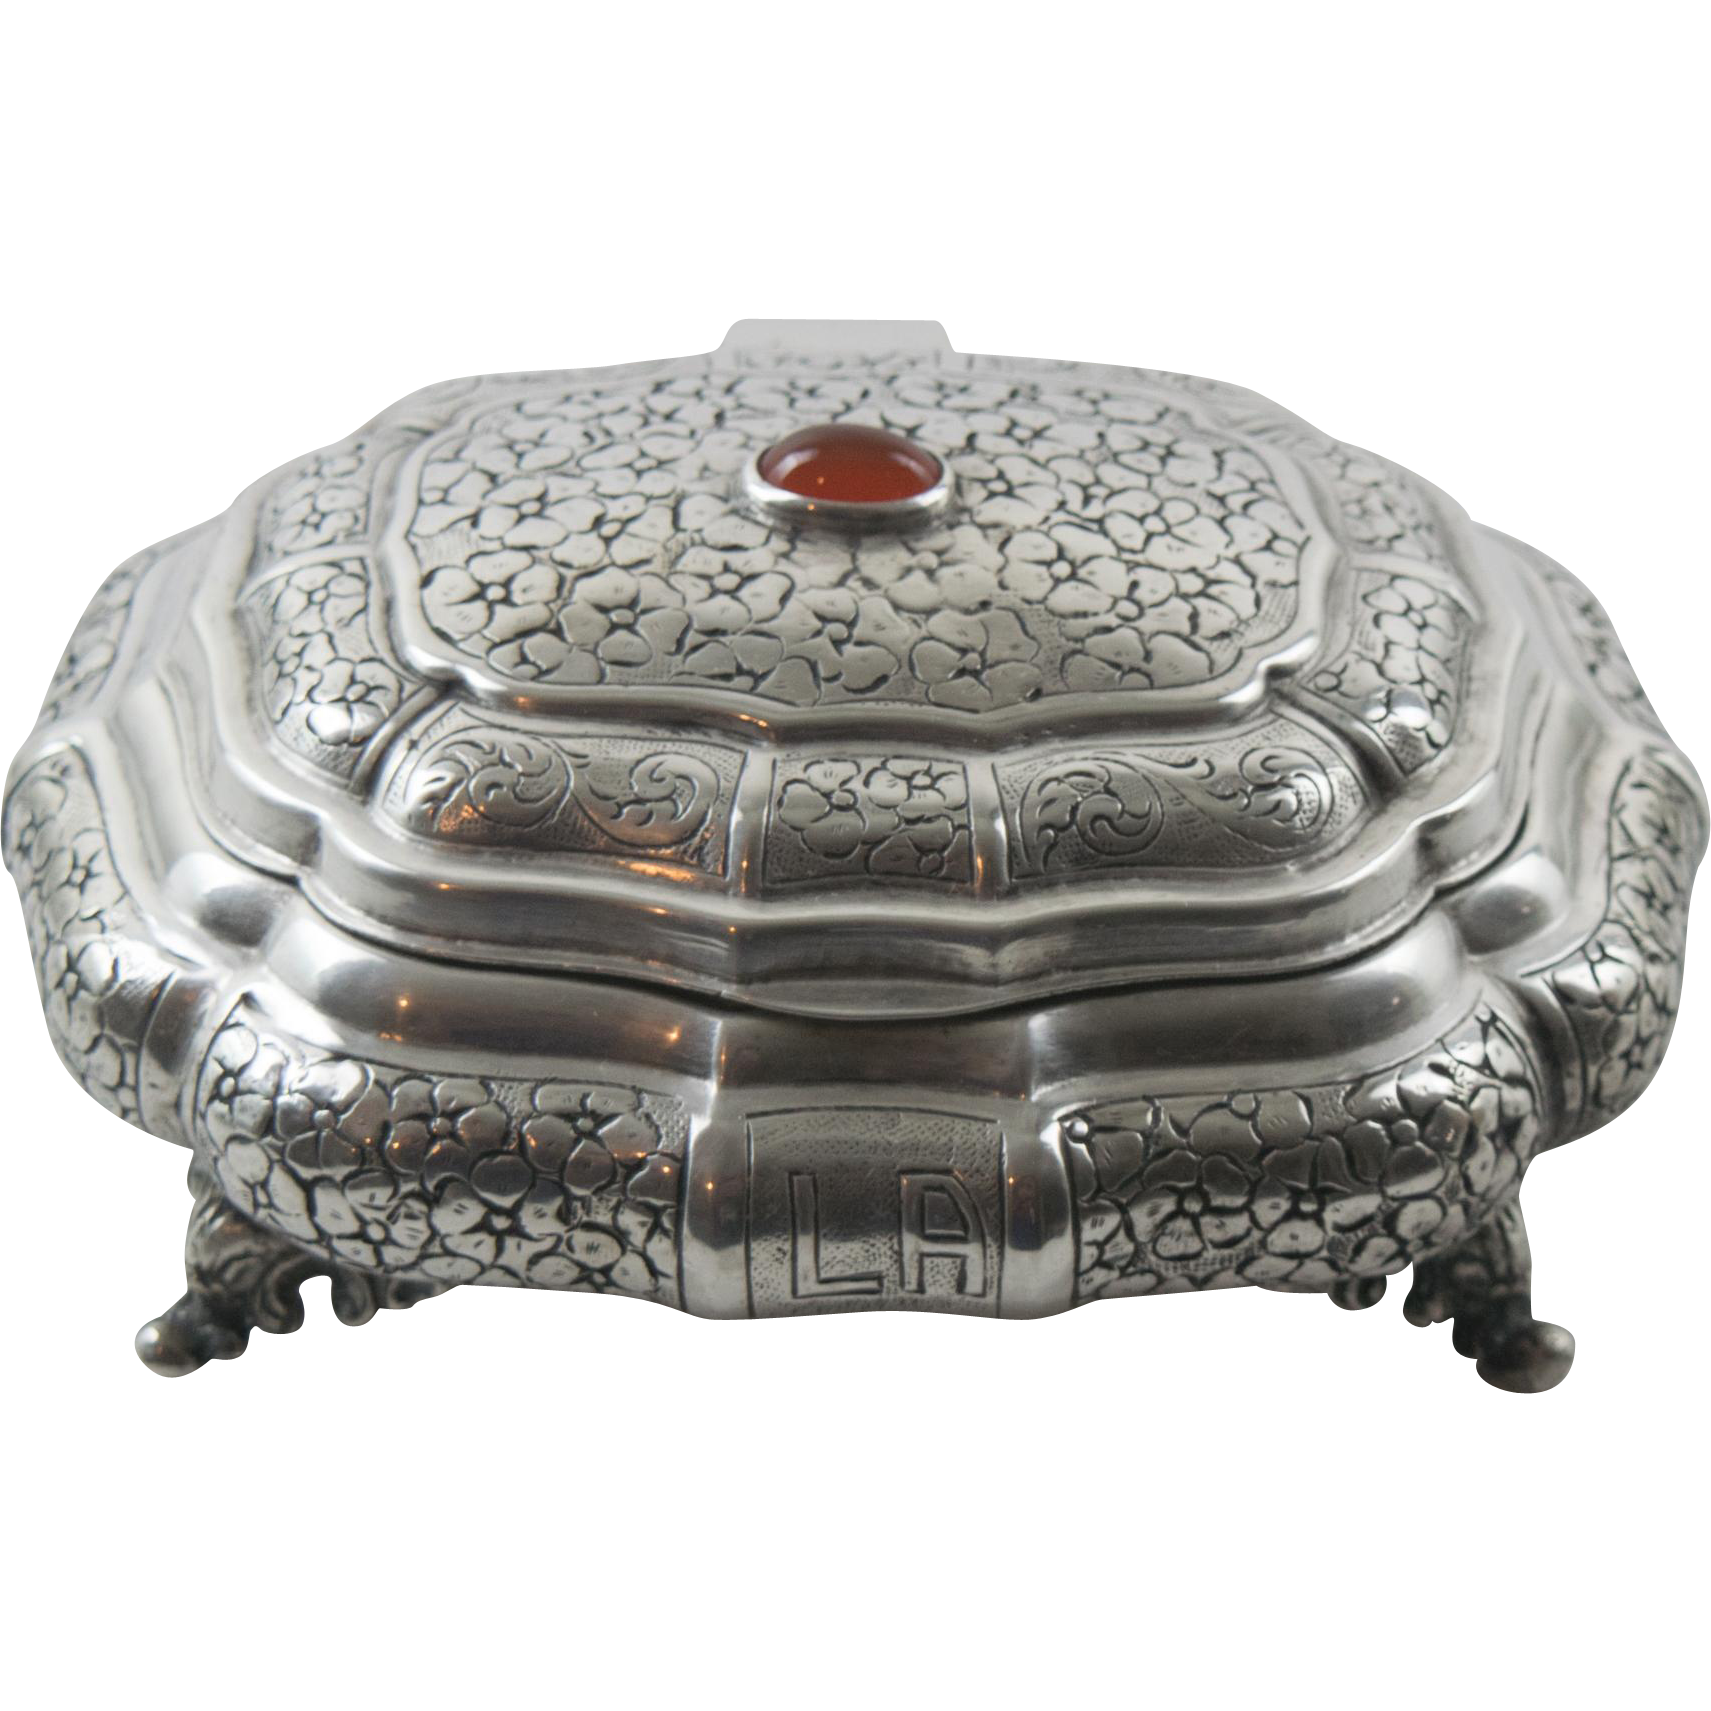 Jeweled Vanity Lights : Continental 800 Silver Jeweled Embossed Vanity Casket Box Jewelry from peter-michaels-shop on ...